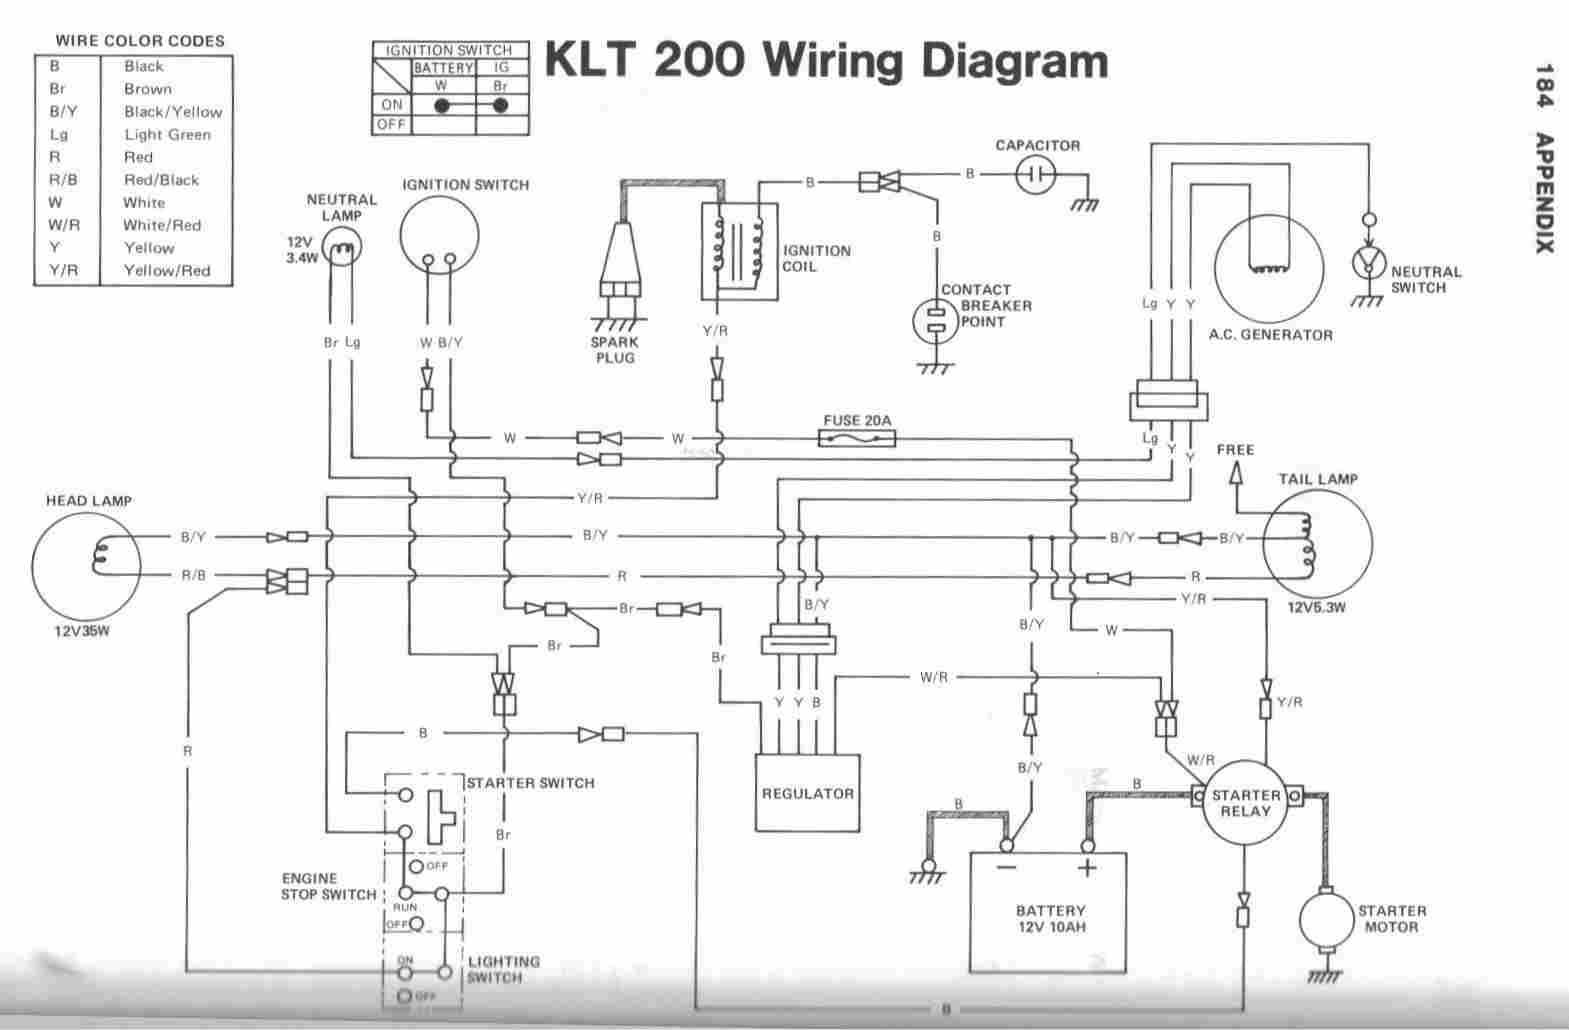 2869034594ce054a636782e5c44b61b4 wiring diagrams \u2022 woorishop co  at crackthecode.co